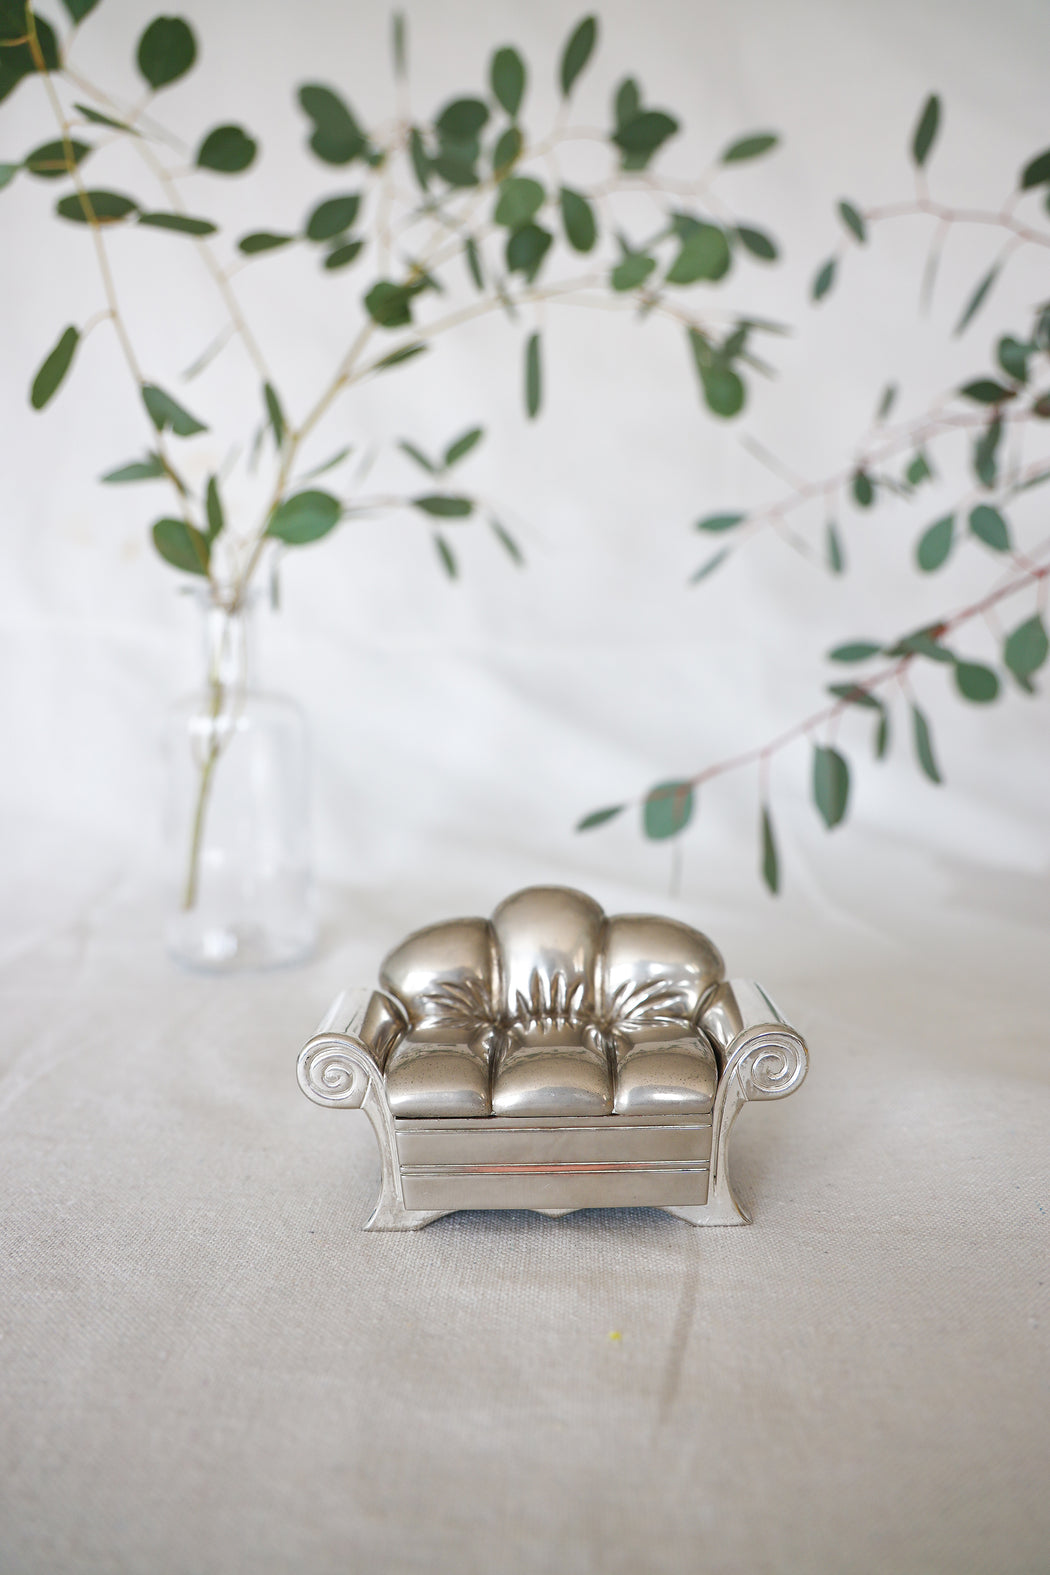 Silver Antique Couch Jewelry Box with Crystals